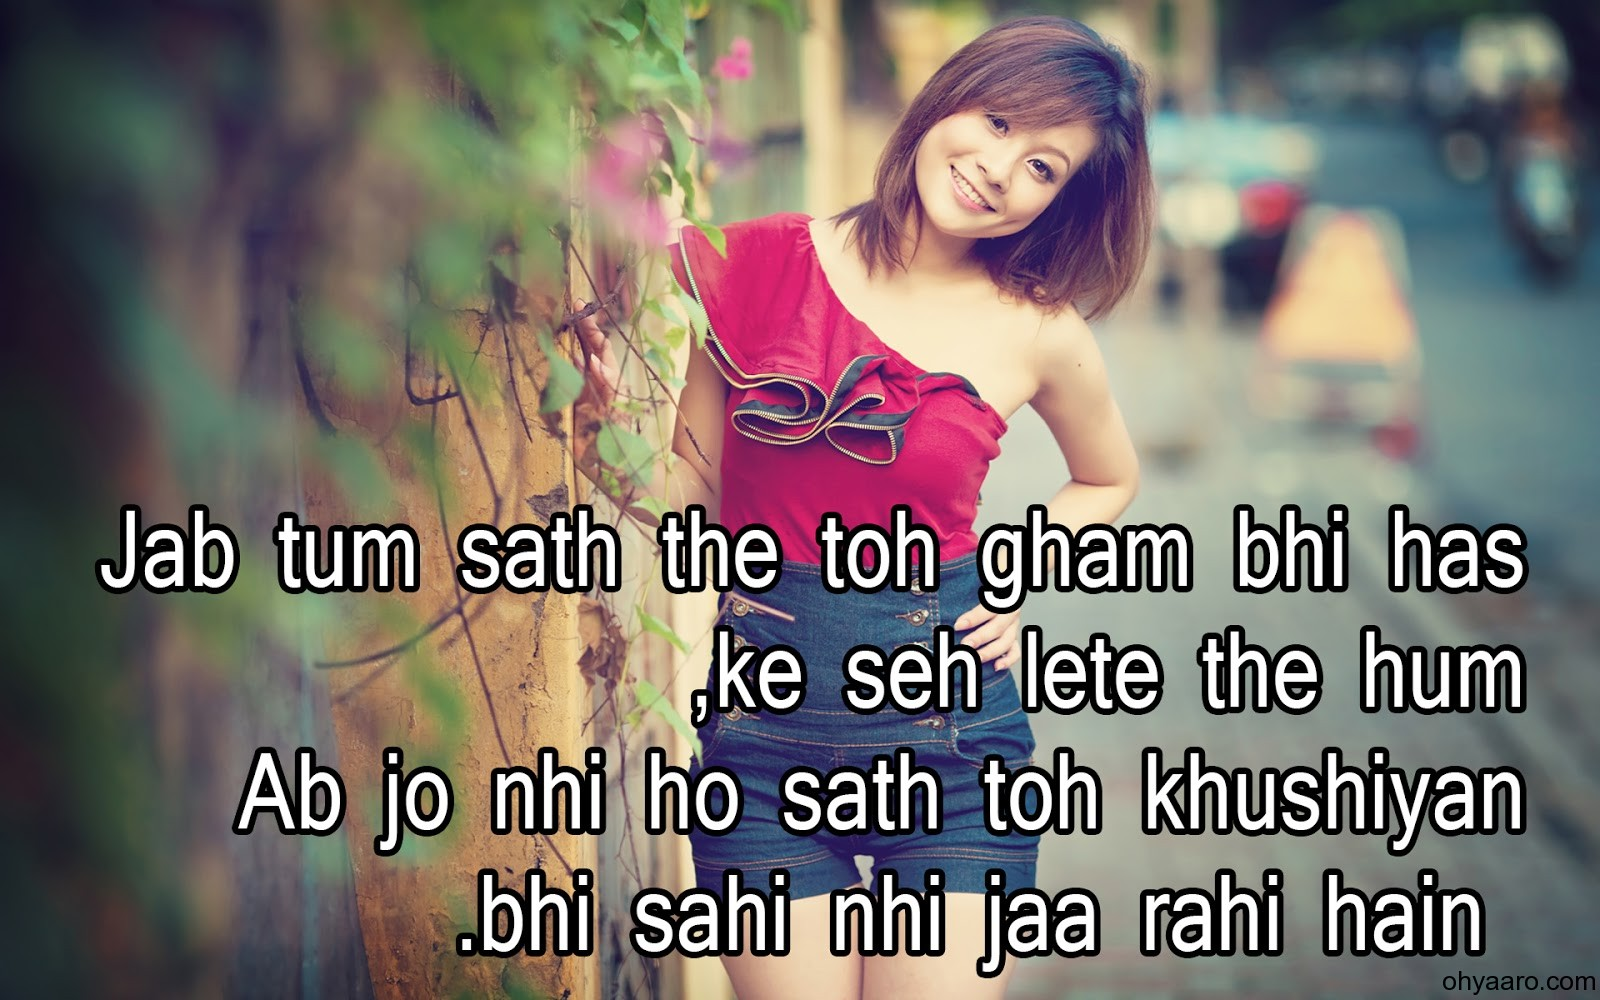 Sad Shayari Image For Girl